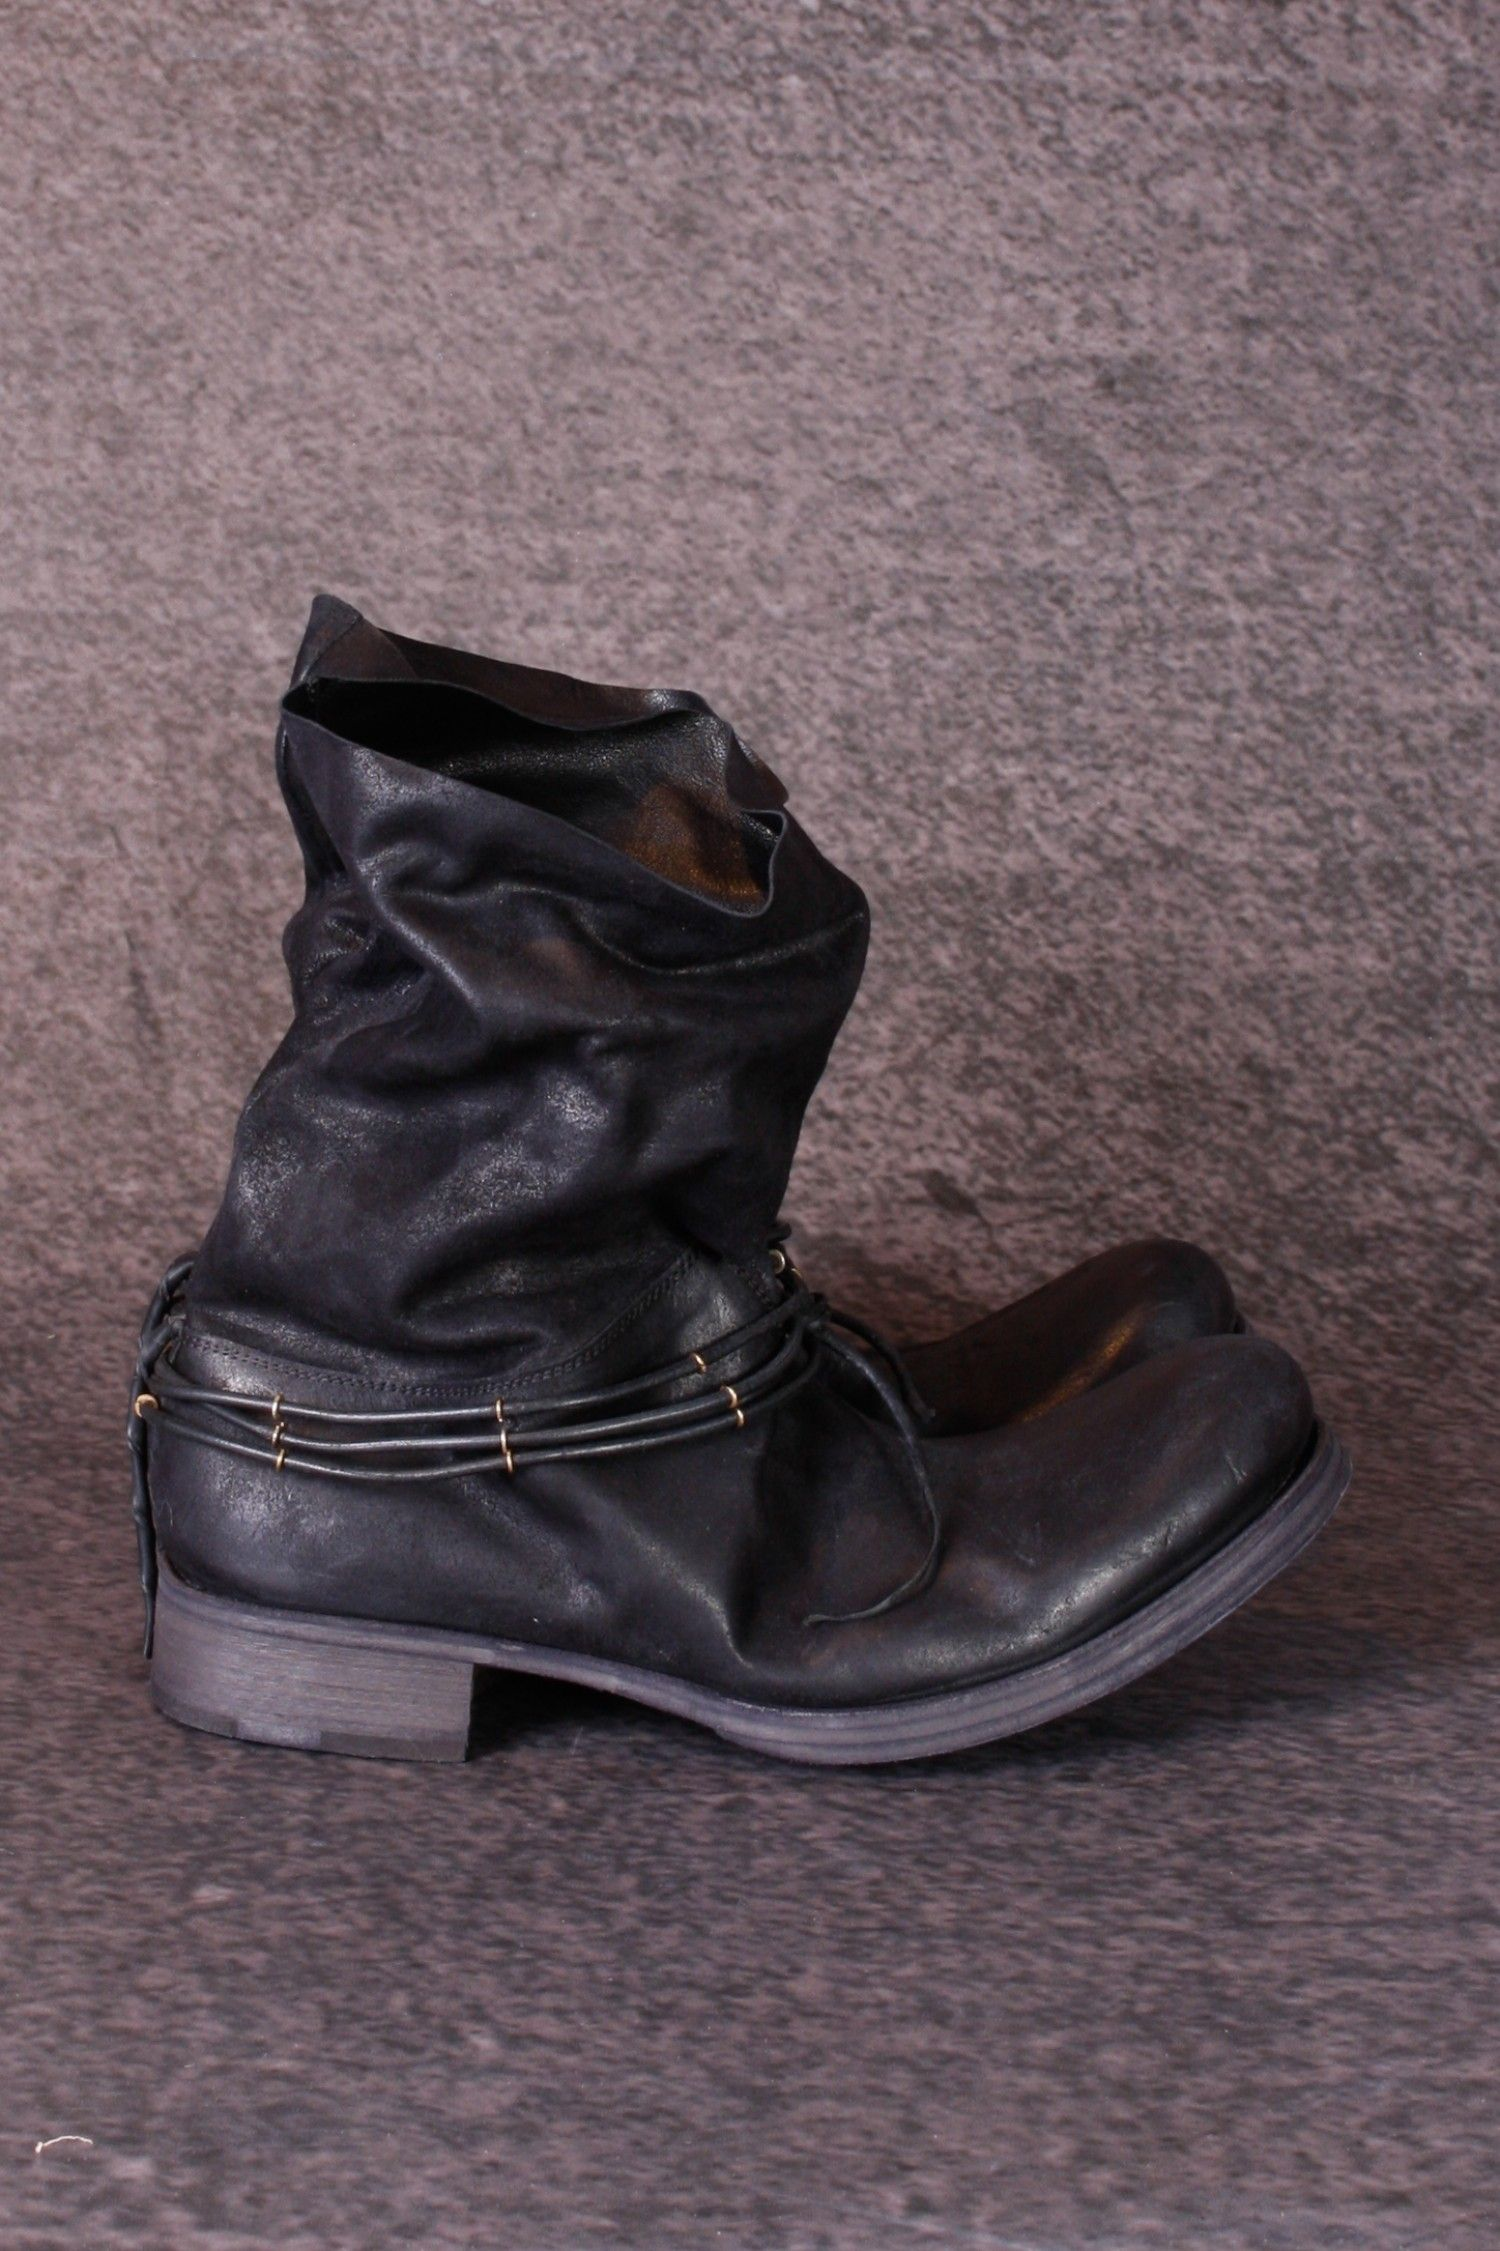 newest e4806 40421 M.A+ by Maurizio Amadei Shoes Man Shop Online | DAAD DANTONE ...